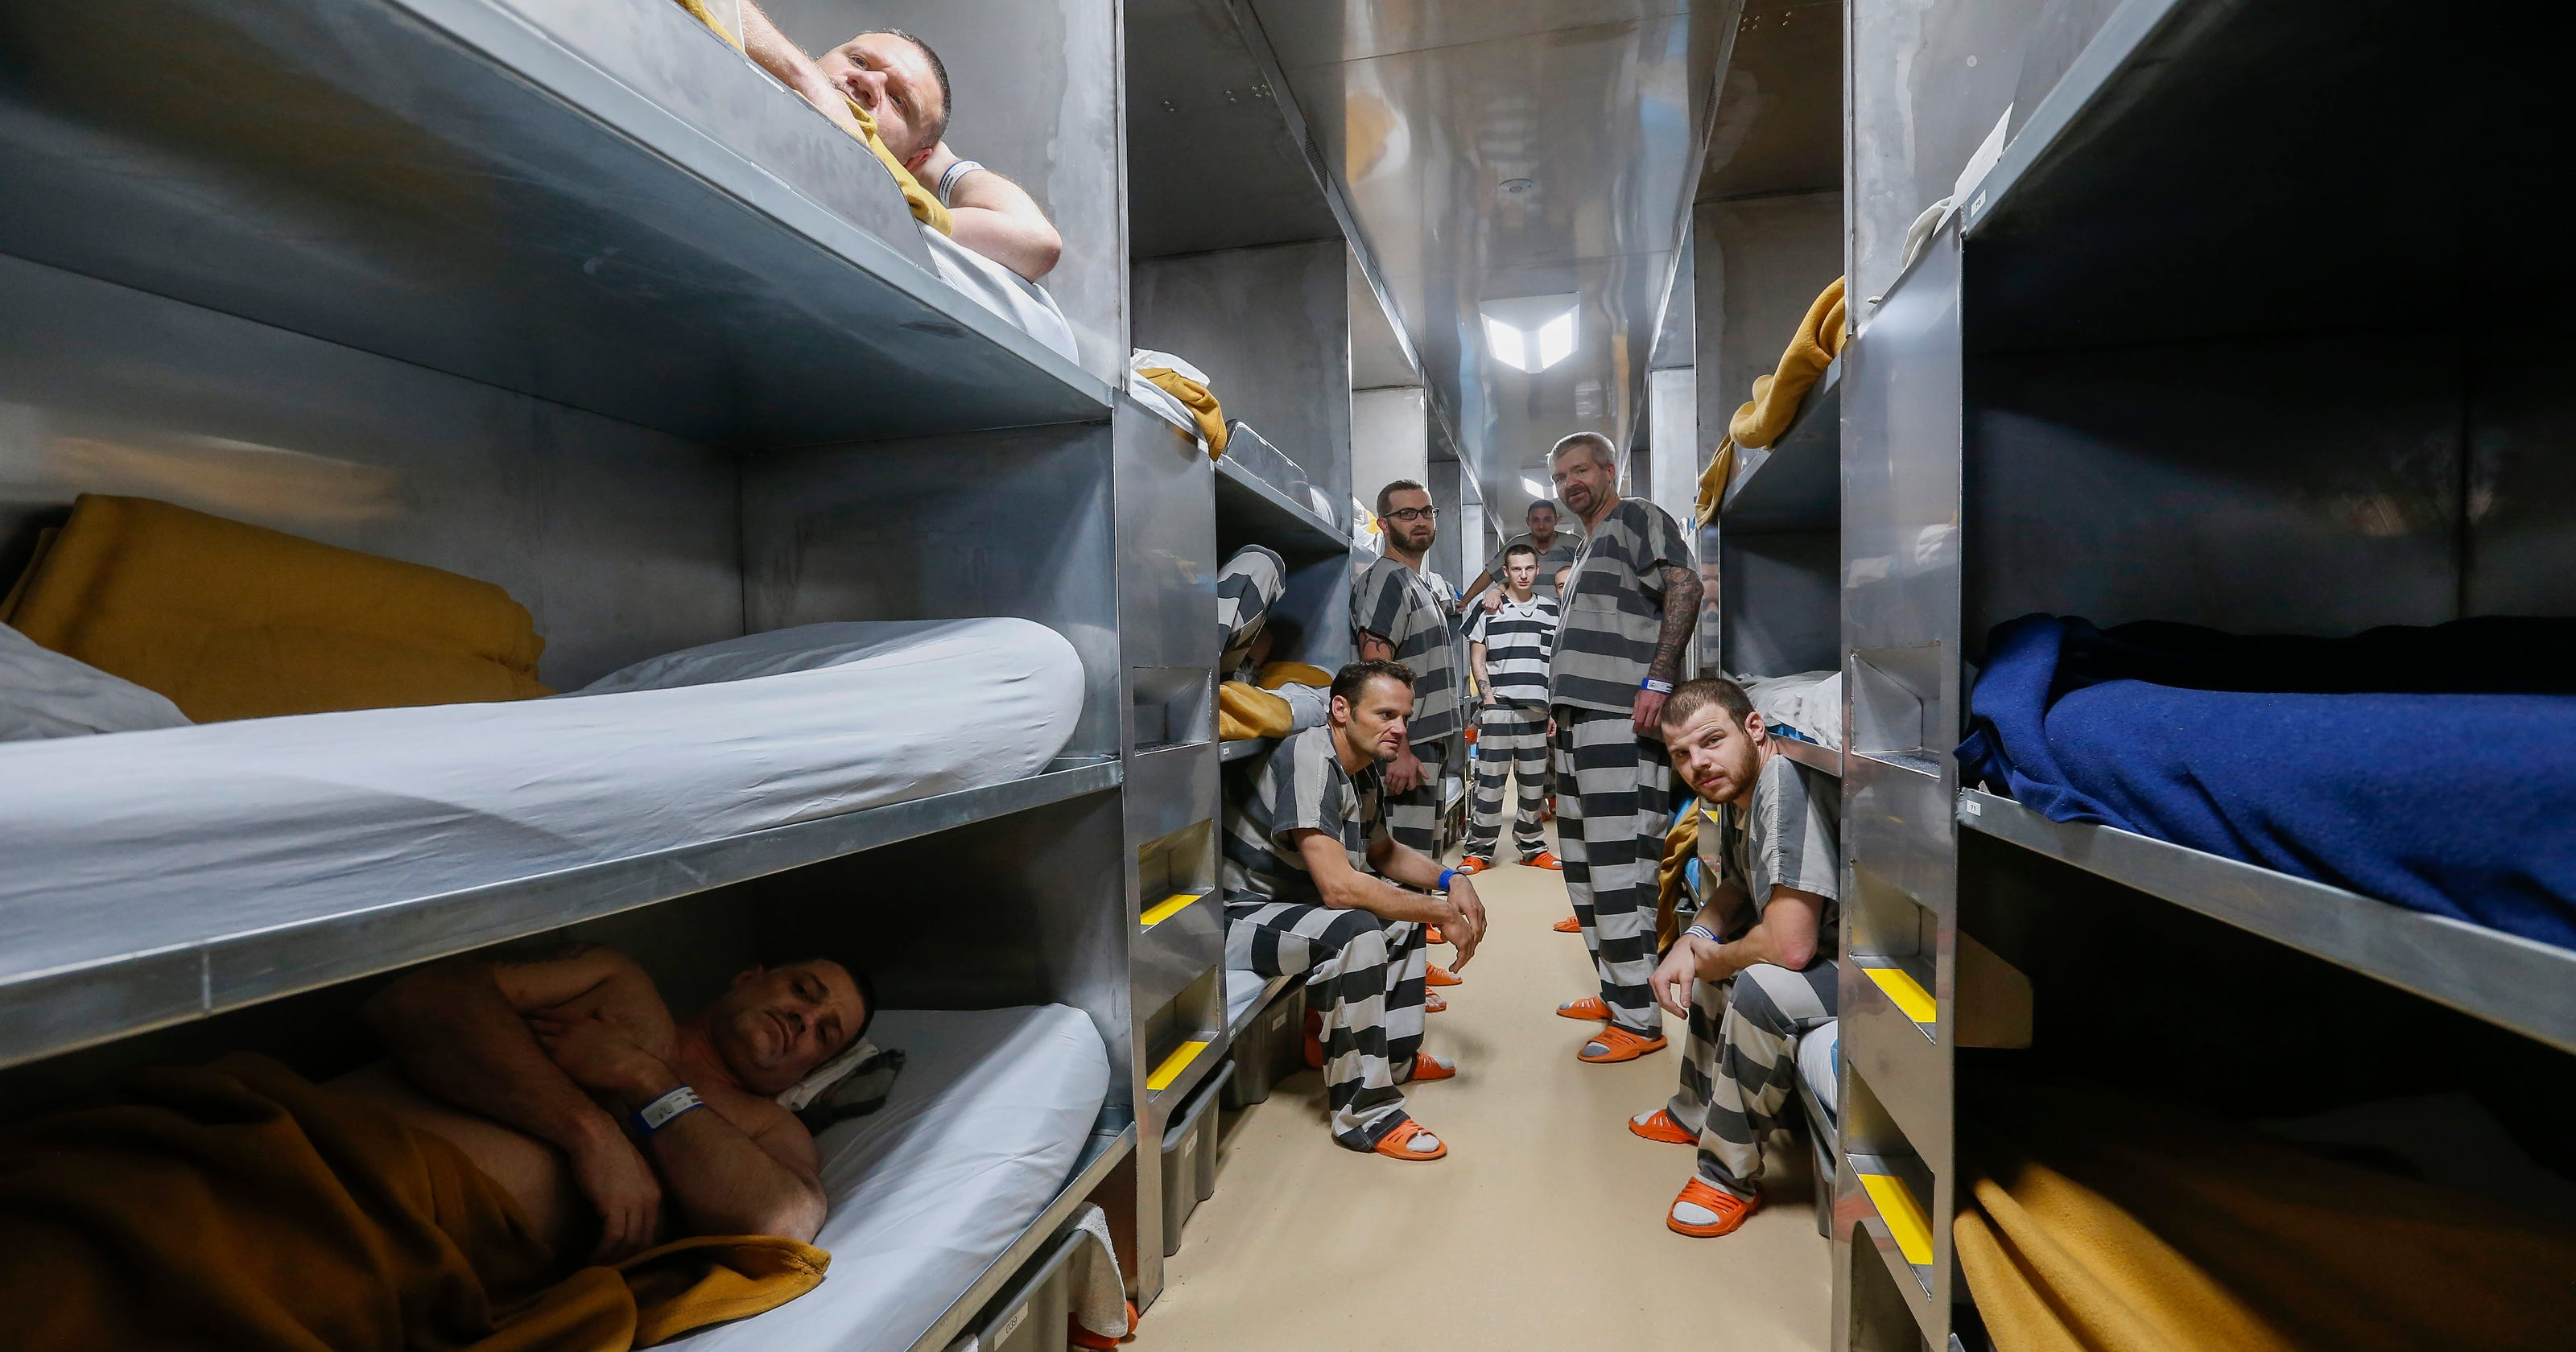 Greene County trailer jail: Good solution or 'recipe for